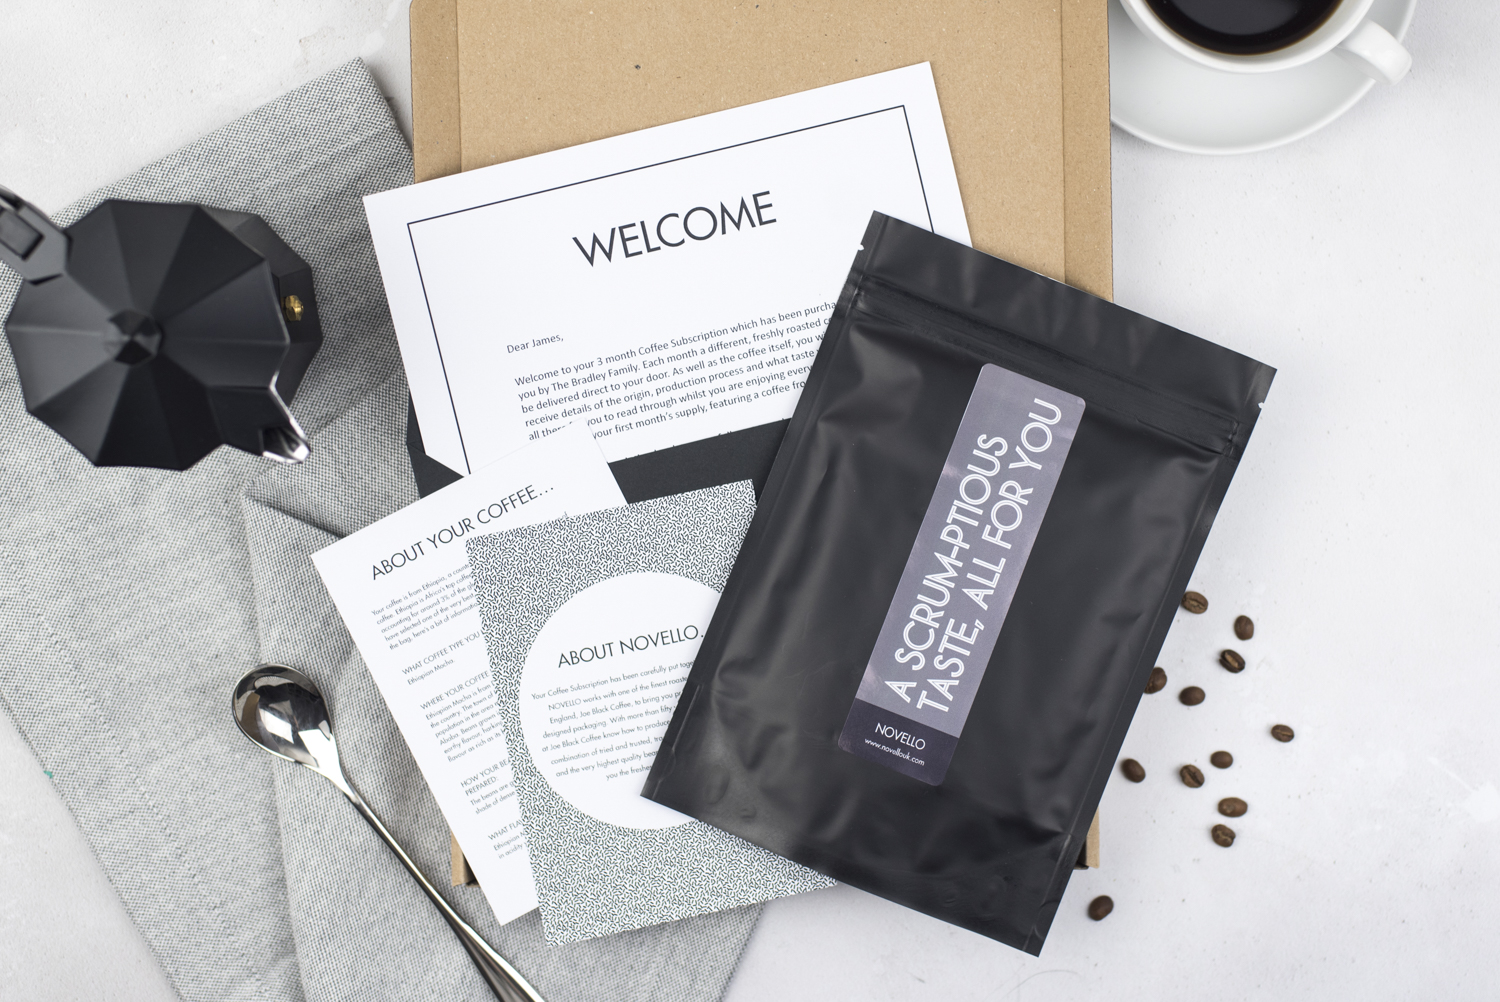 Coffee-Subscription-Box.jpg